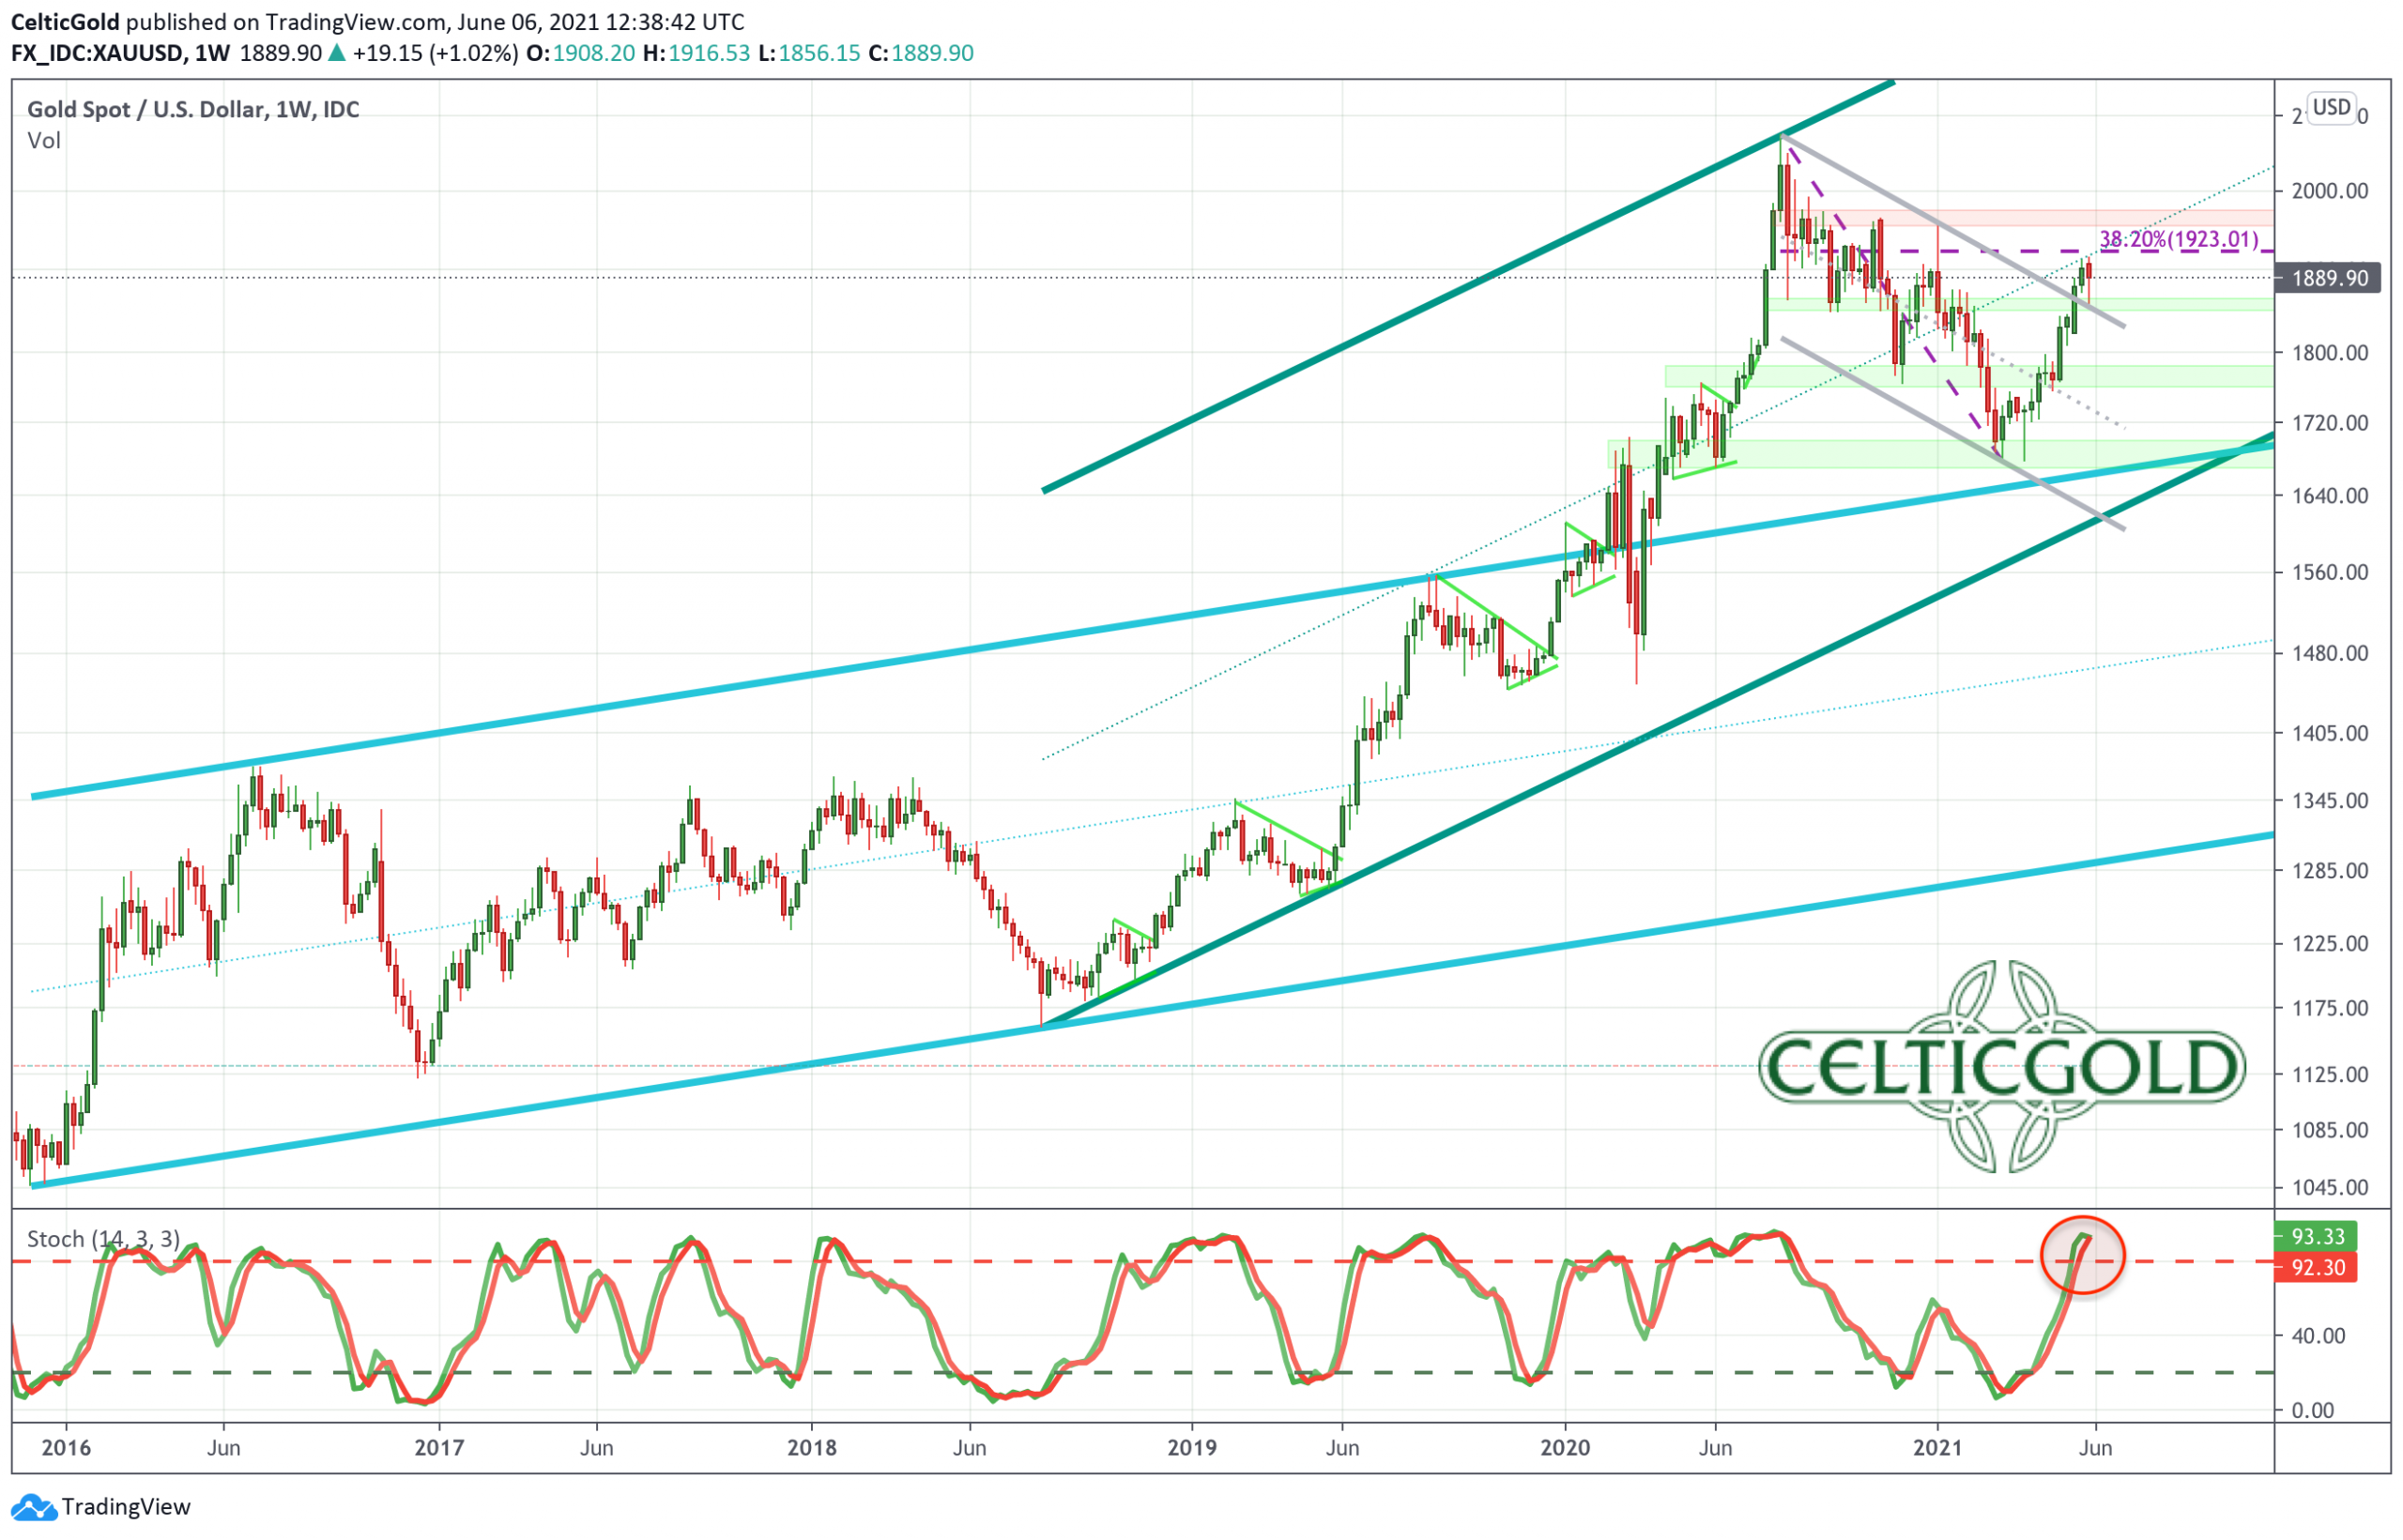 Gold in US-Dollars, weekly chart as ofJune 6th, 2021. Source: Tradingview. Gold - Healthy Pullback or Escalation Until Midsummer?